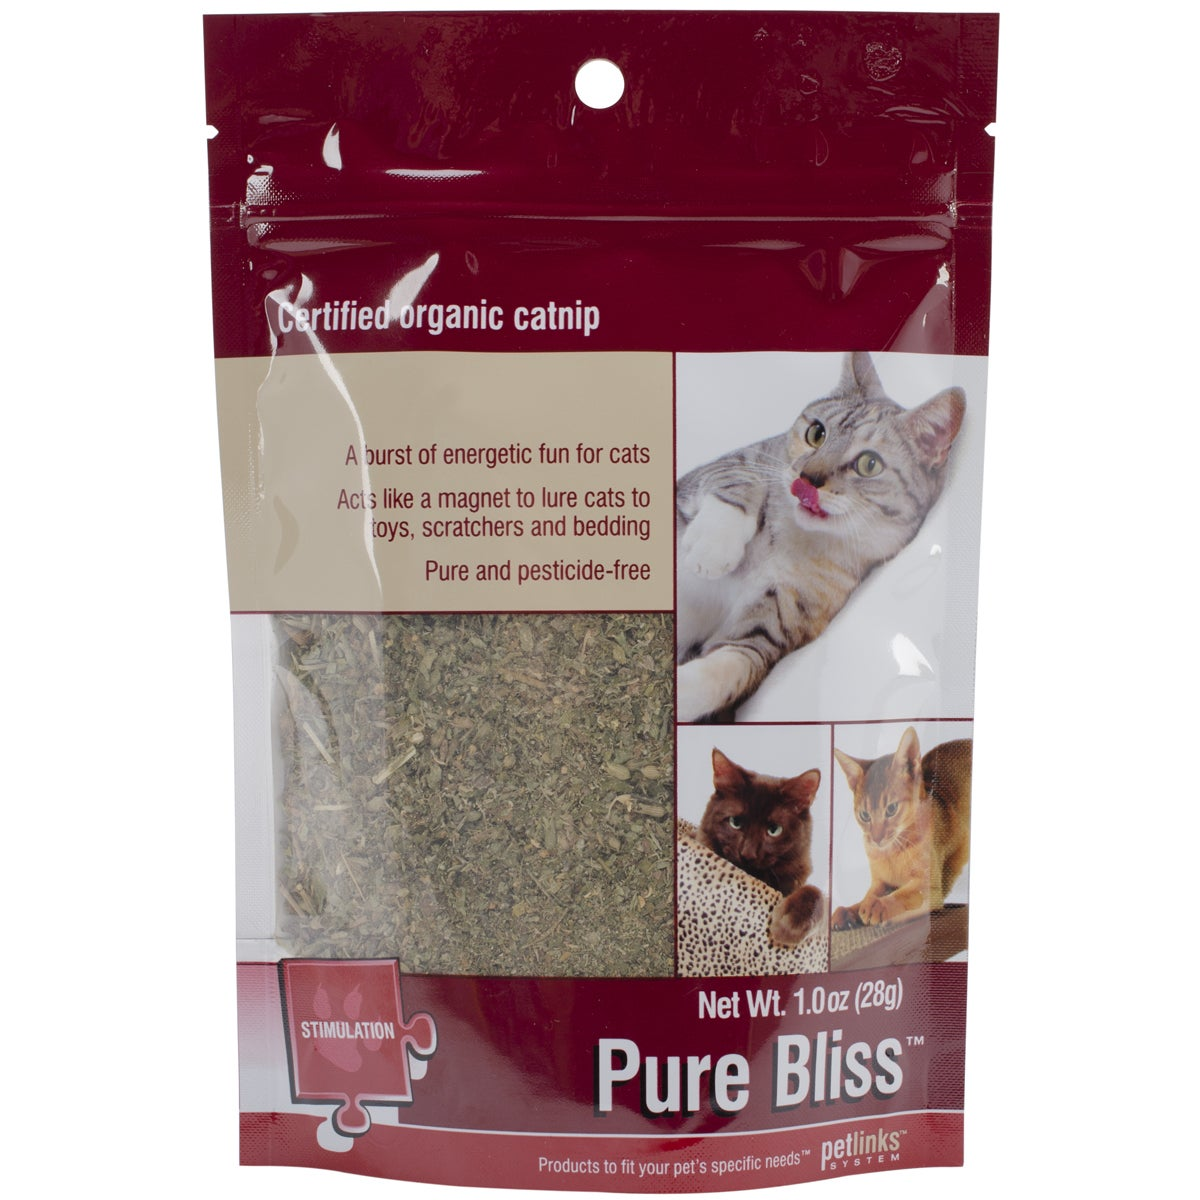 WorldWise Imports Petlinks Pure Bliss Certified Organic C...